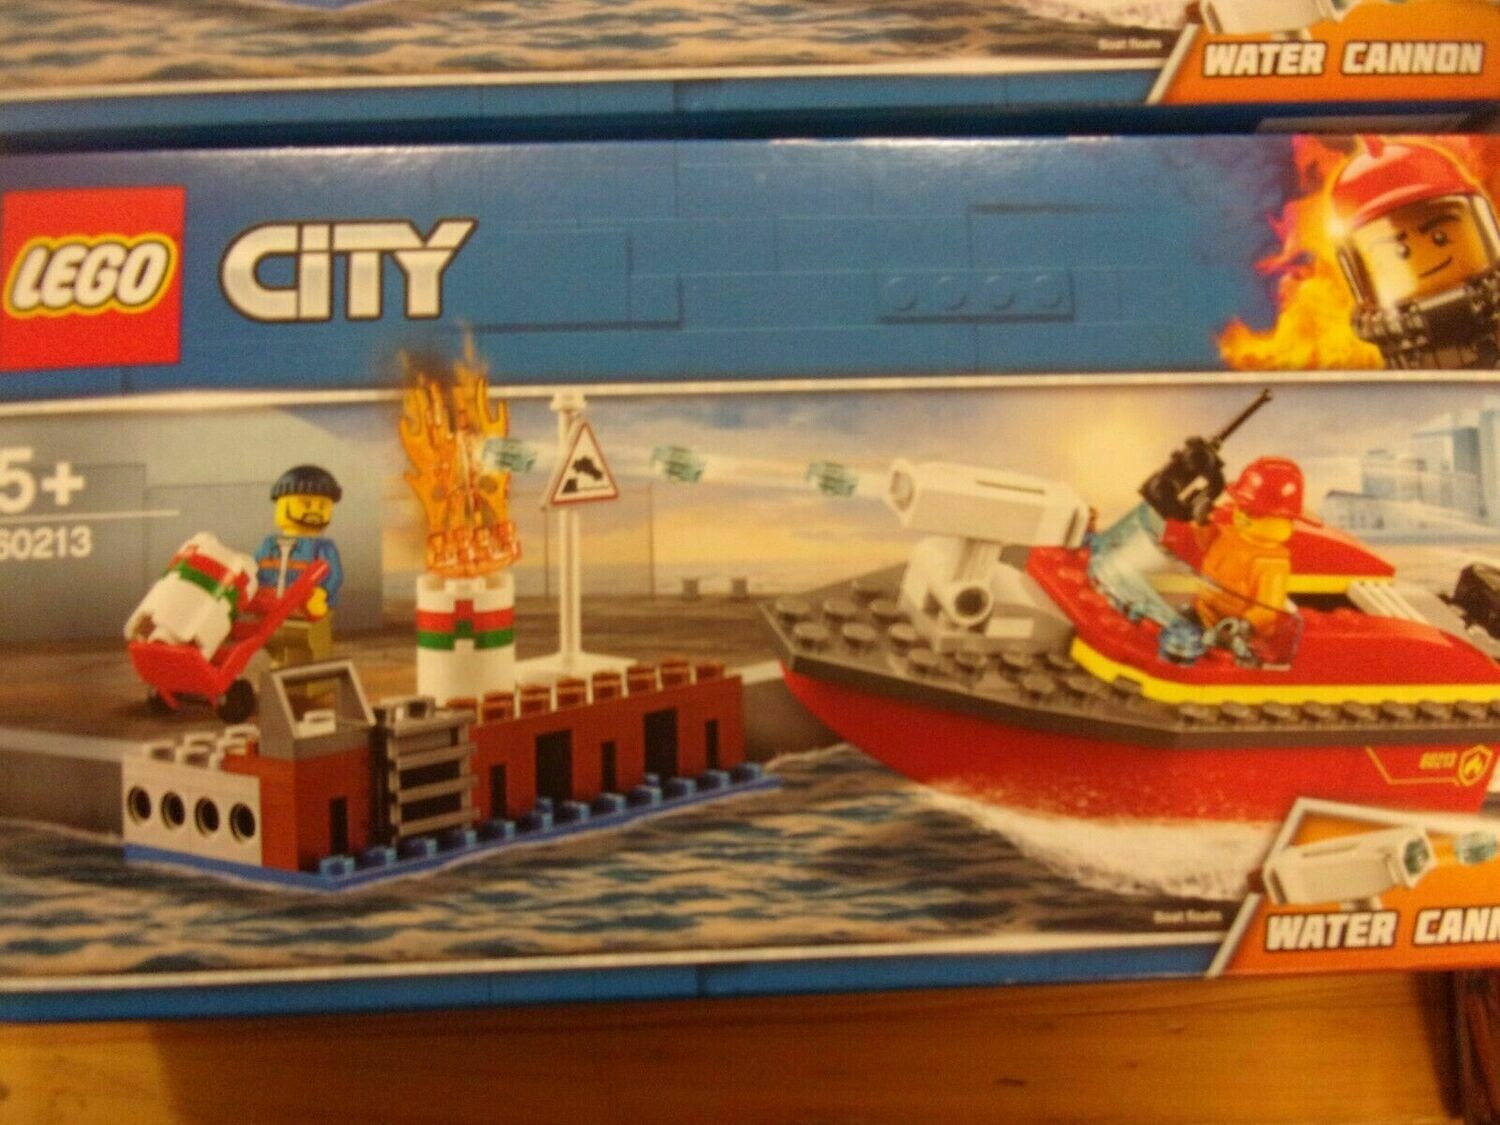 Lego 60213 City Incendio sul molo